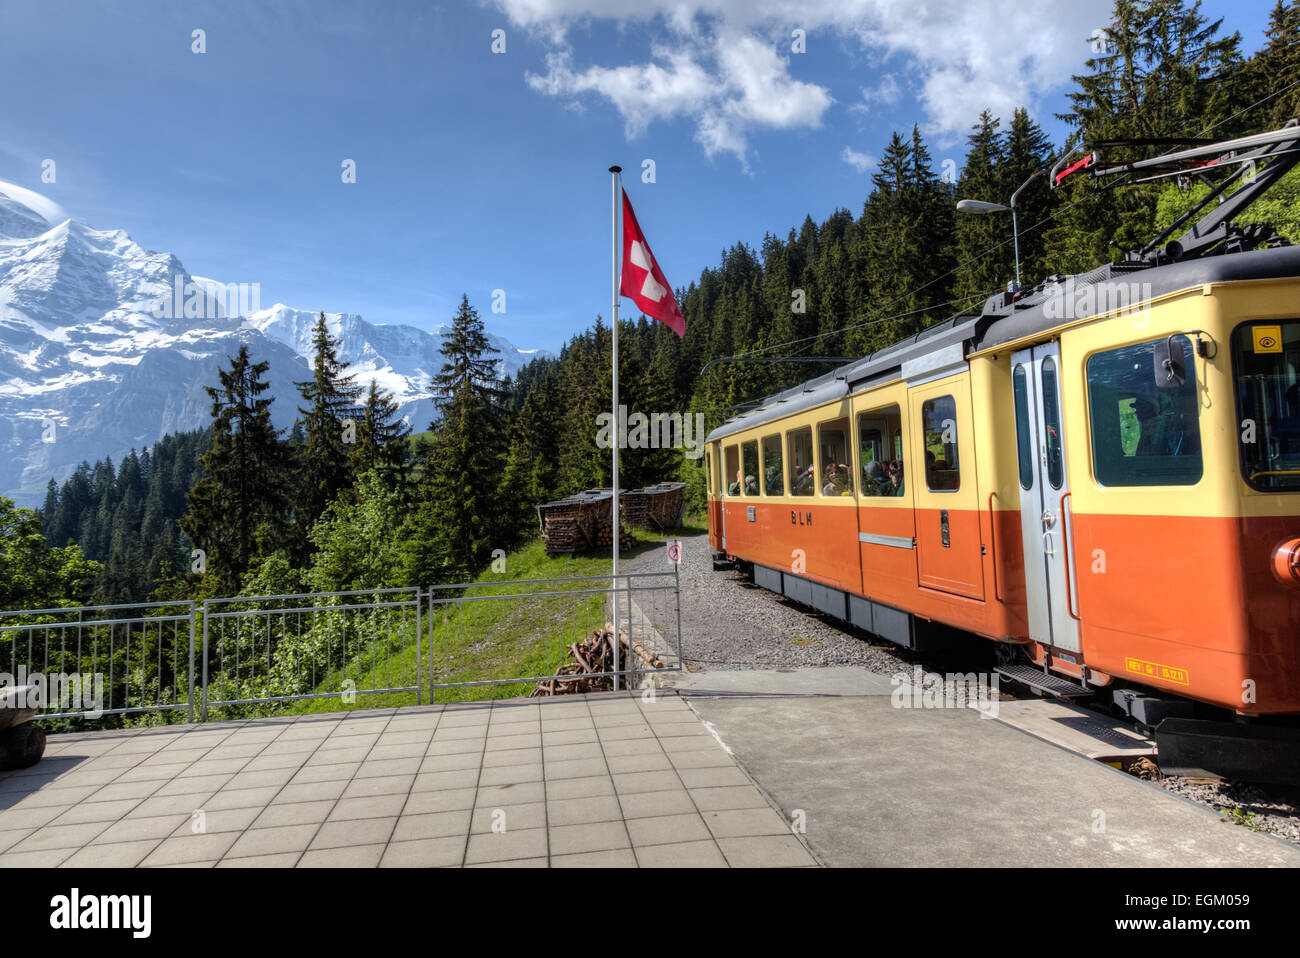 Train leaving station at Grutschalpin in the Jungfrau Region of the Bernese Oberland of Switzerland headed to Murren. - Stock Image